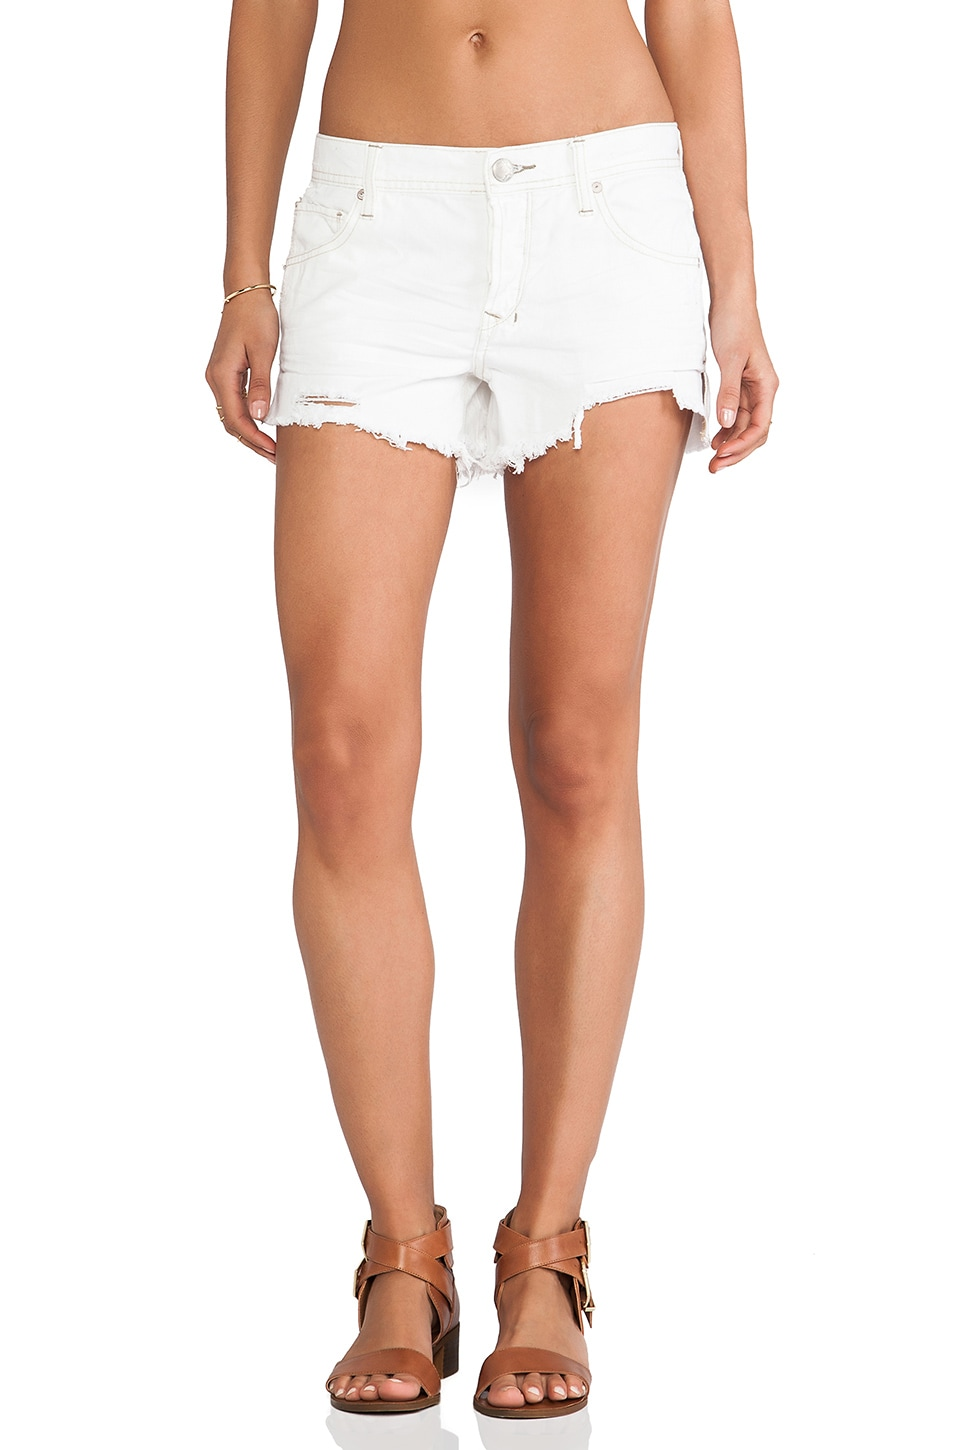 Free People Sharkbite Shorts in Polar White